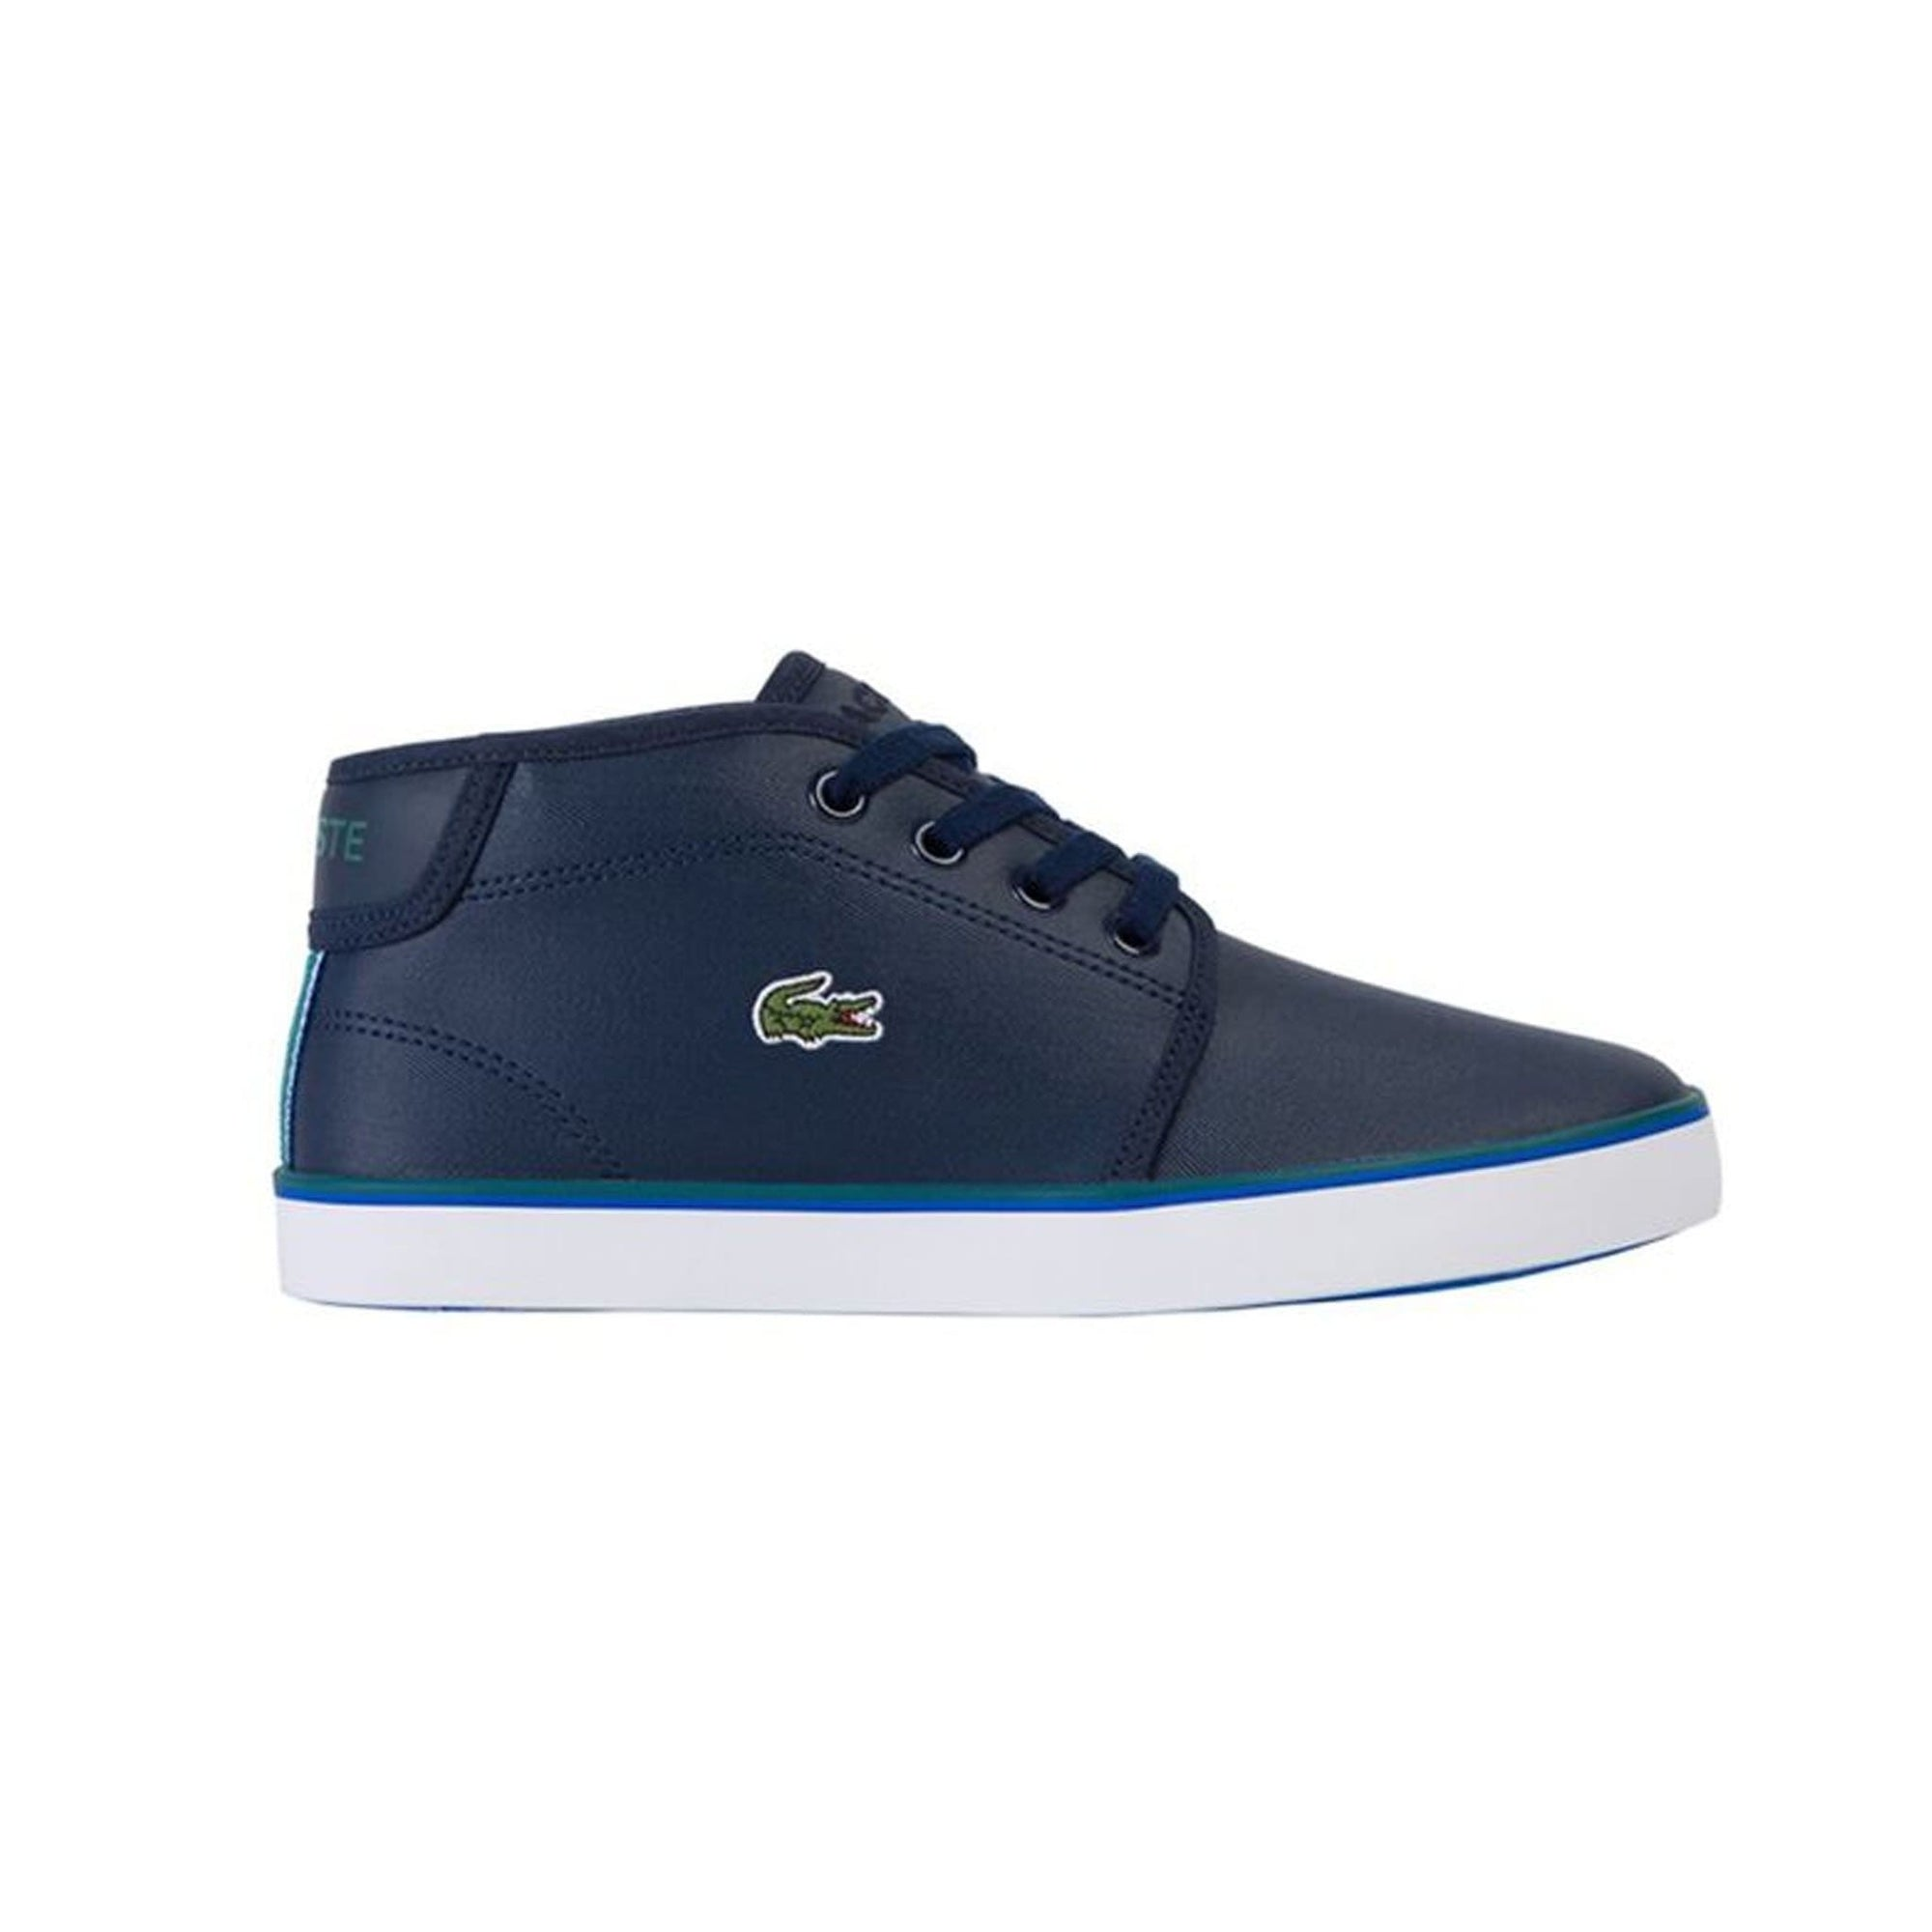 Lacoste Ampthill 120 1 Kids (4669507895427)